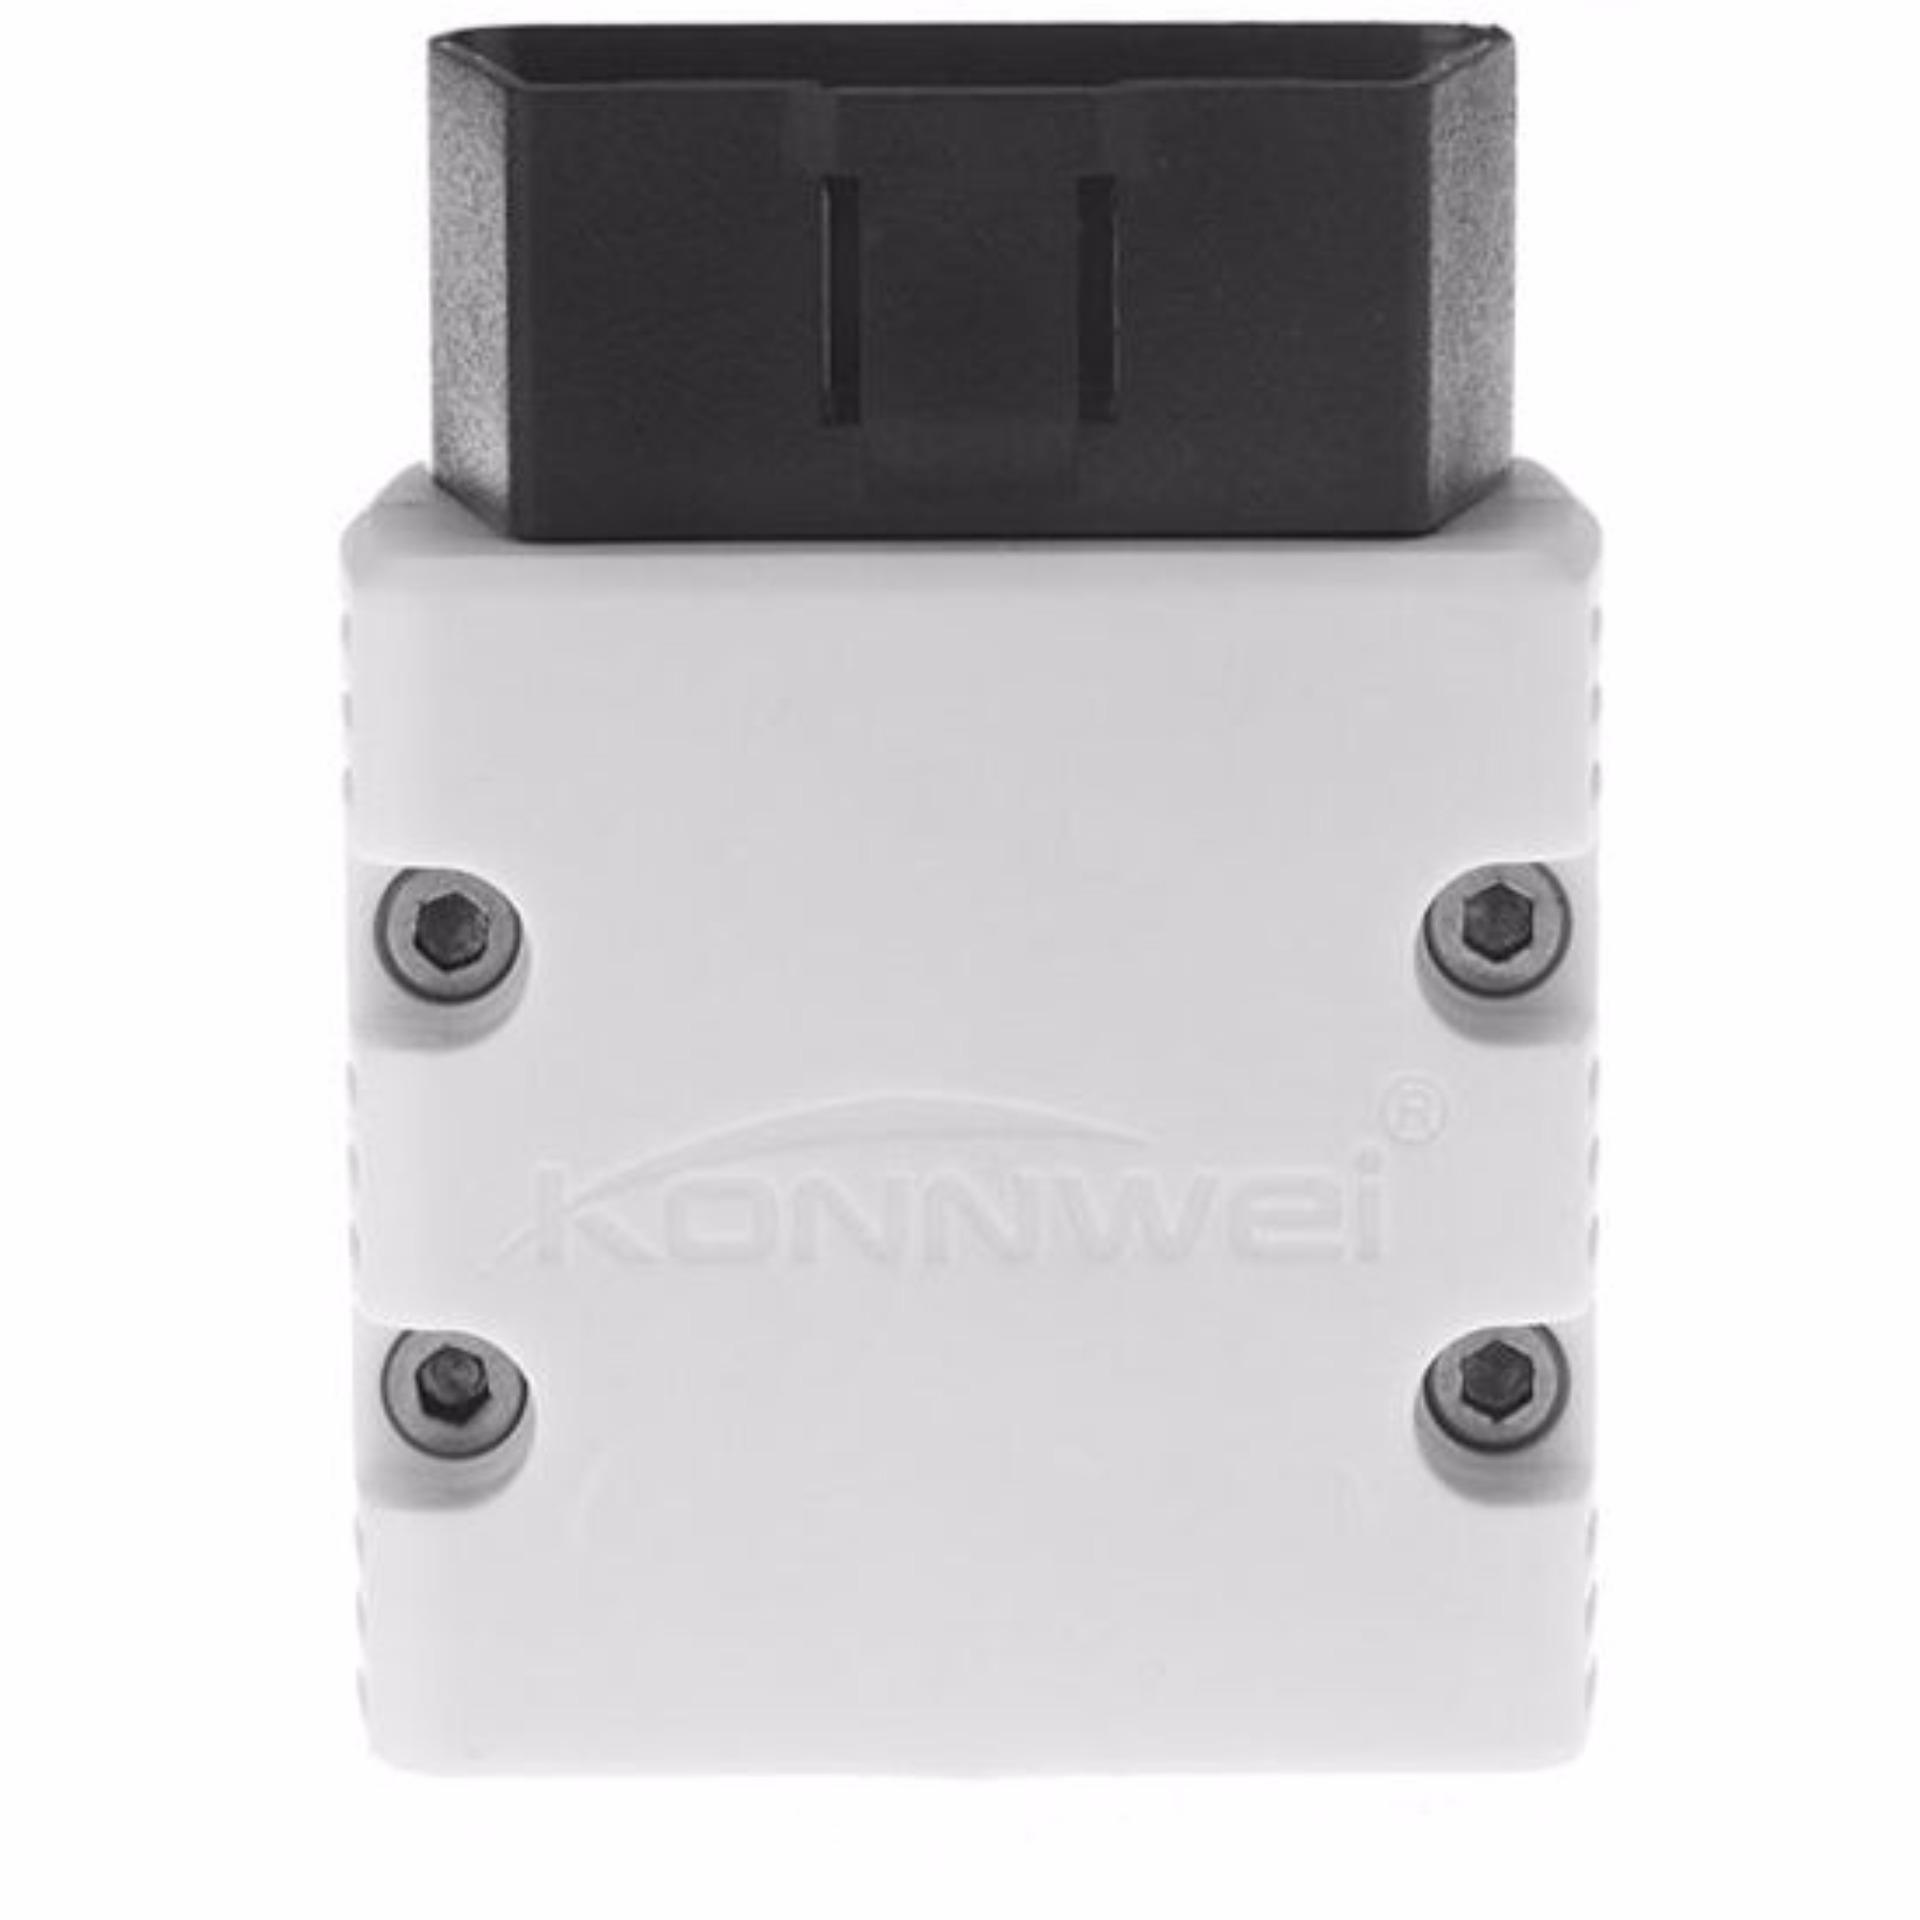 Konnwei Kw902 White Color Super Mini Bluetooth OBD/OBD2 for Android PC Tablet Smartphone